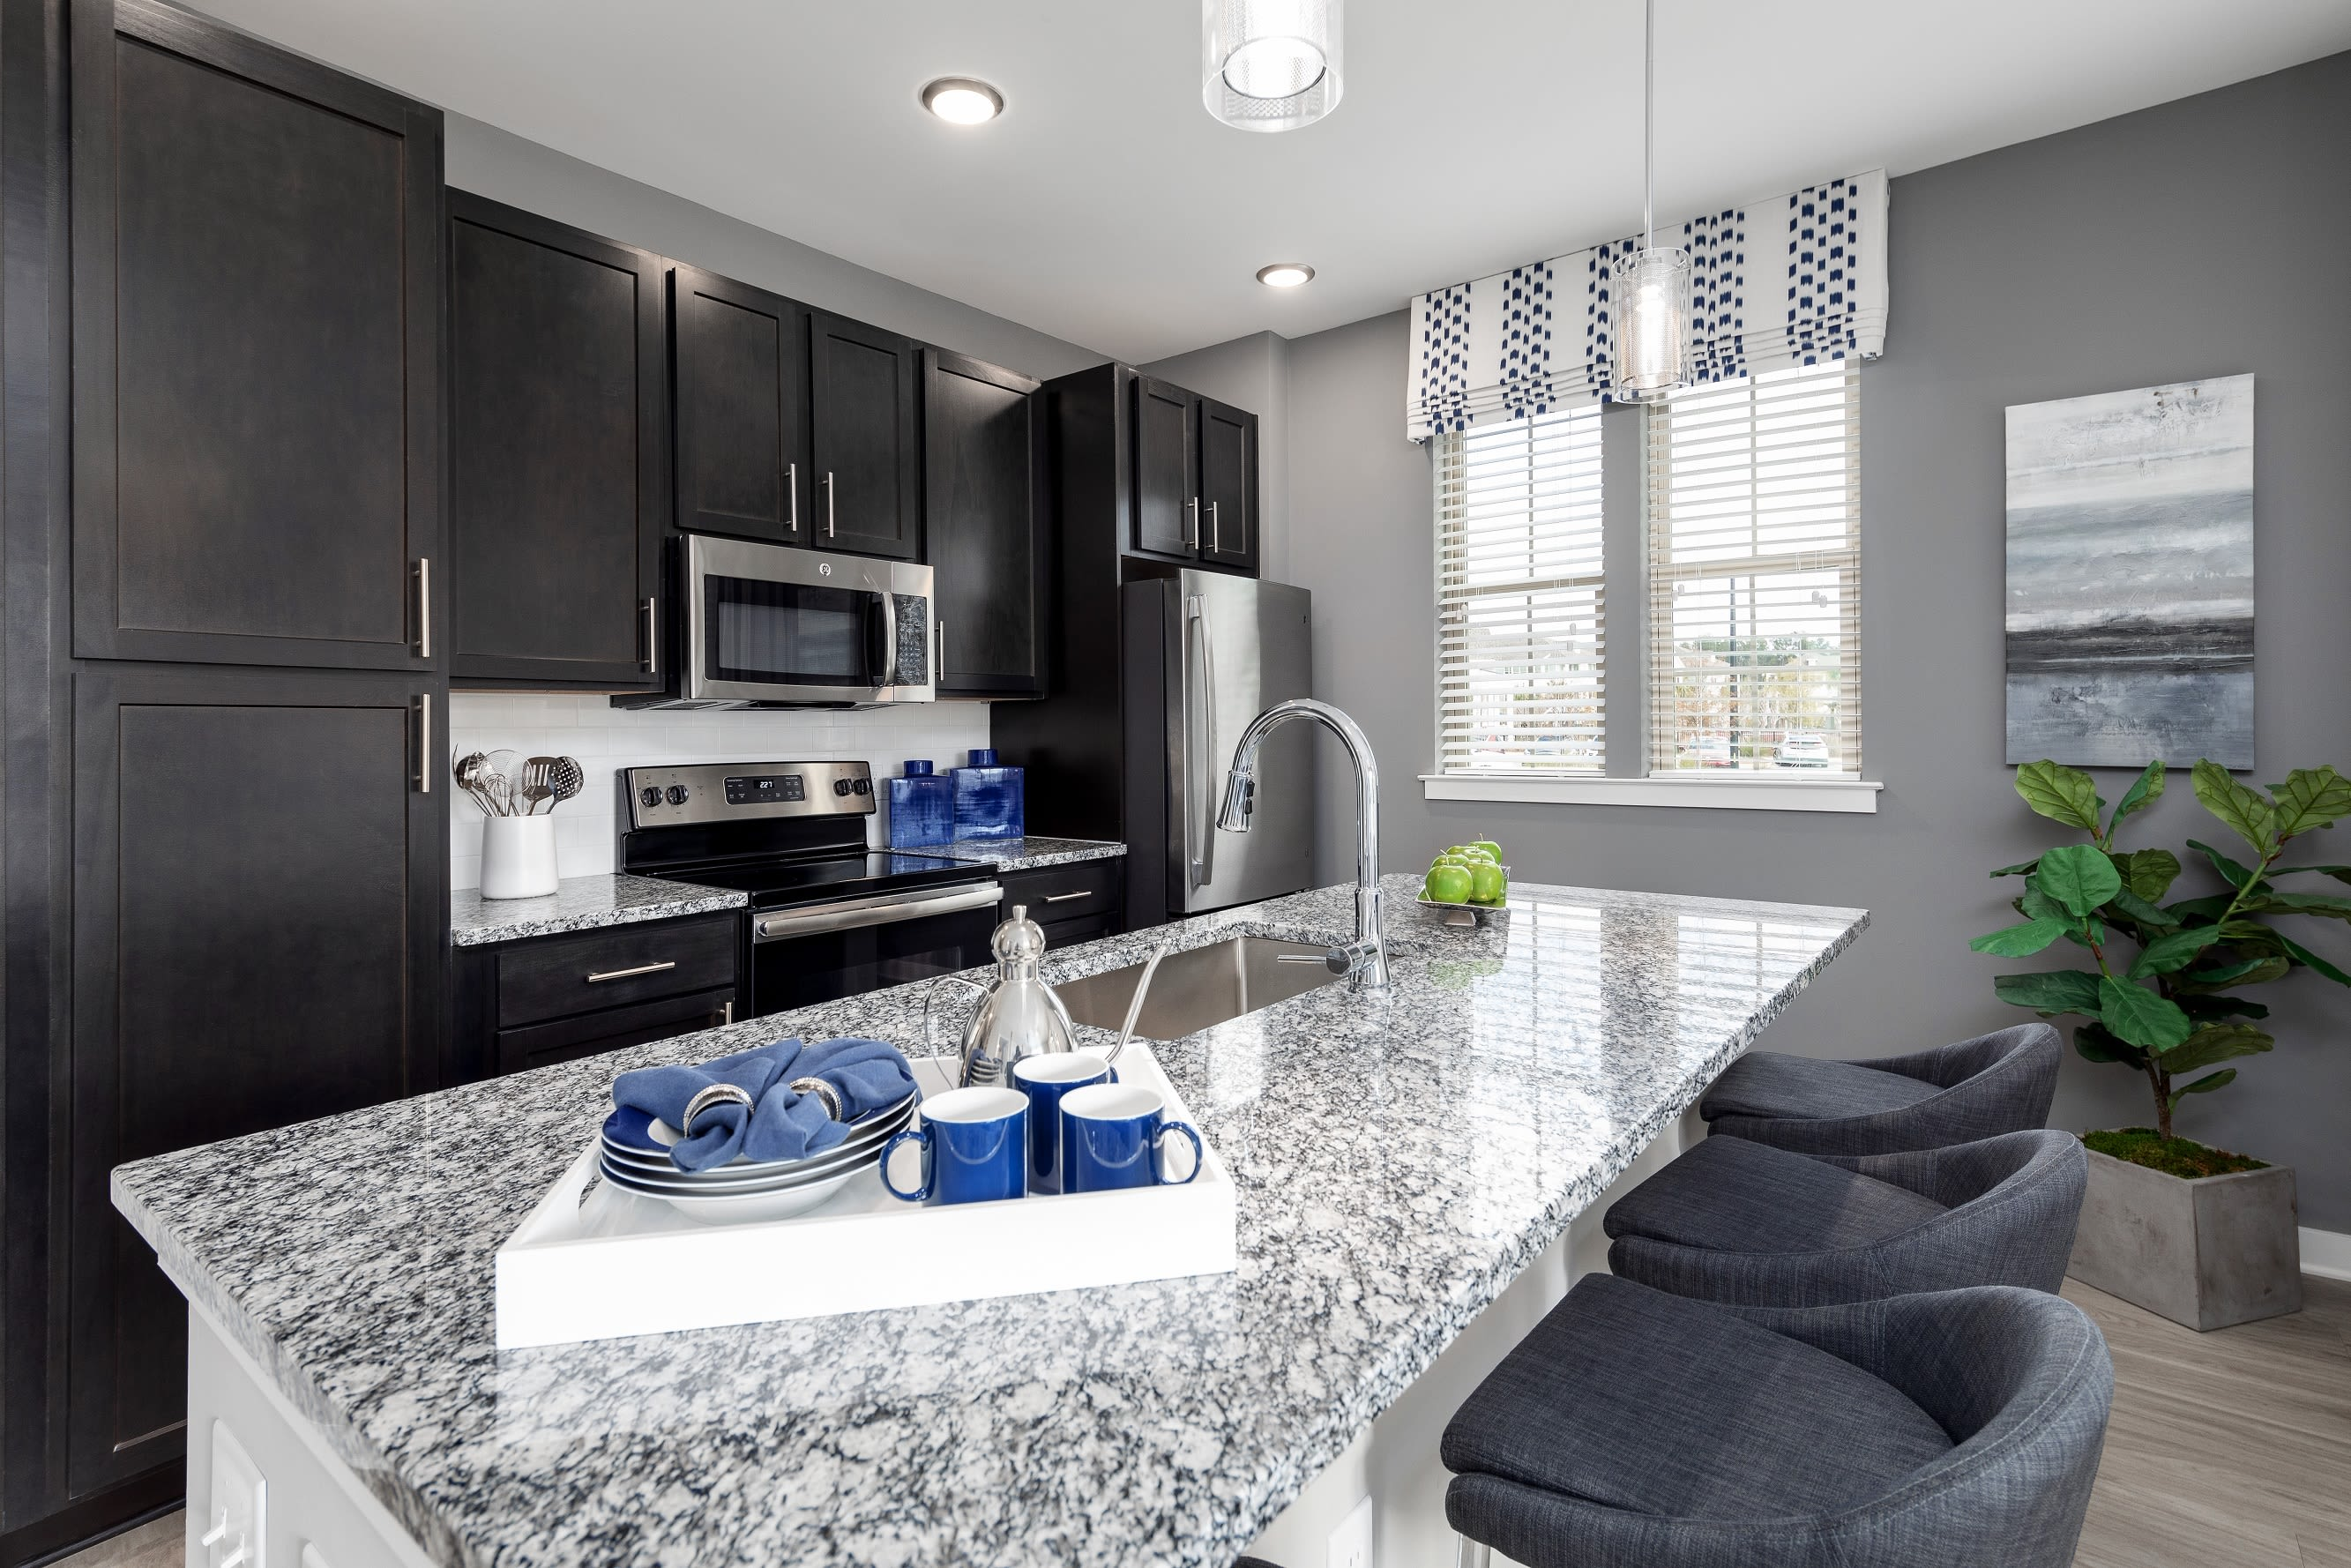 Kitchen with large granite island countertop at Elevate at Brighton Park in Summerville, South Carolina